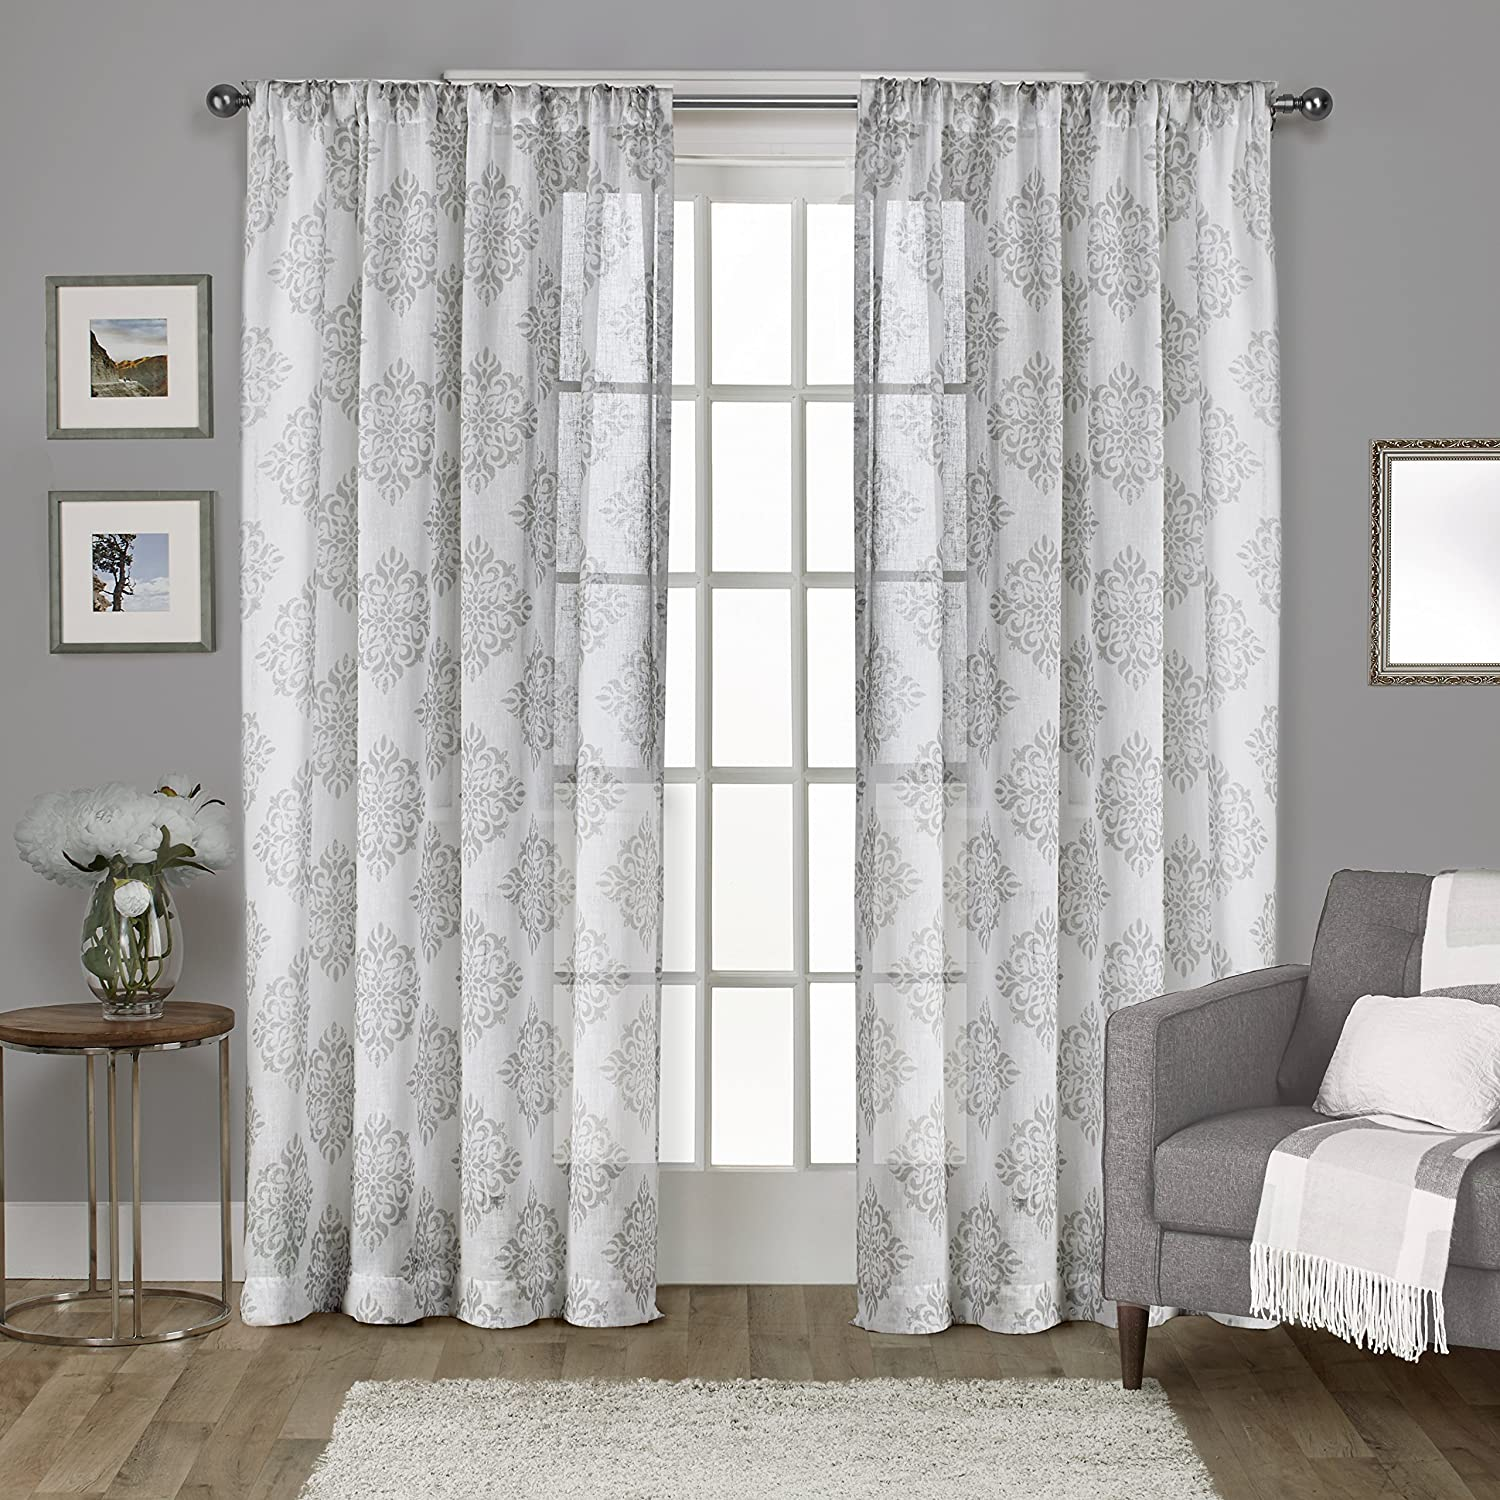 Exclusive Home Curtains Nagano Medallion Belgian Linen Window Curtain Panel Pair with Rod Pocket, 54x108, Dove Grey, 2 Count